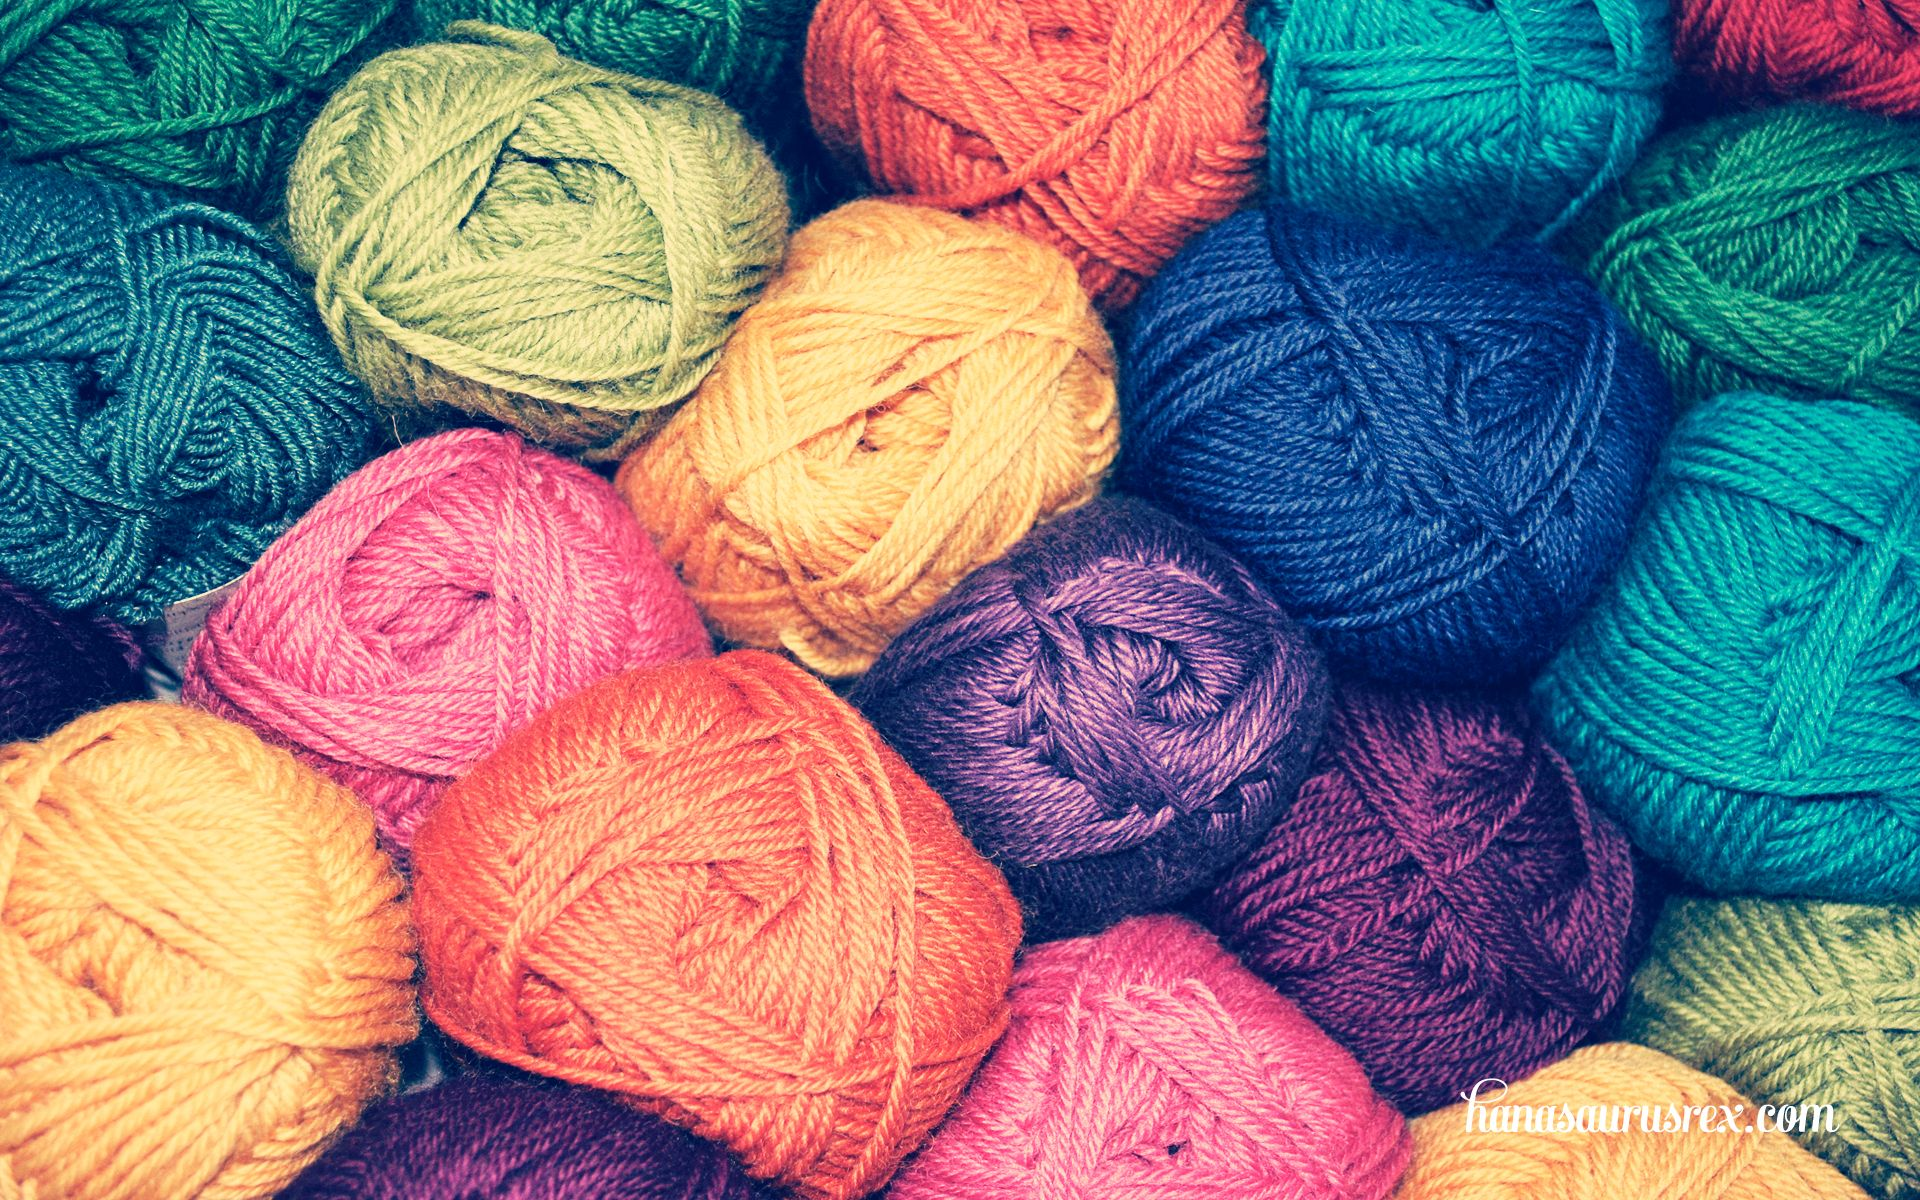 Yarn Knitting : Crochet Fridays - Crocheters in Central CT (Plainville, CT) Meetup